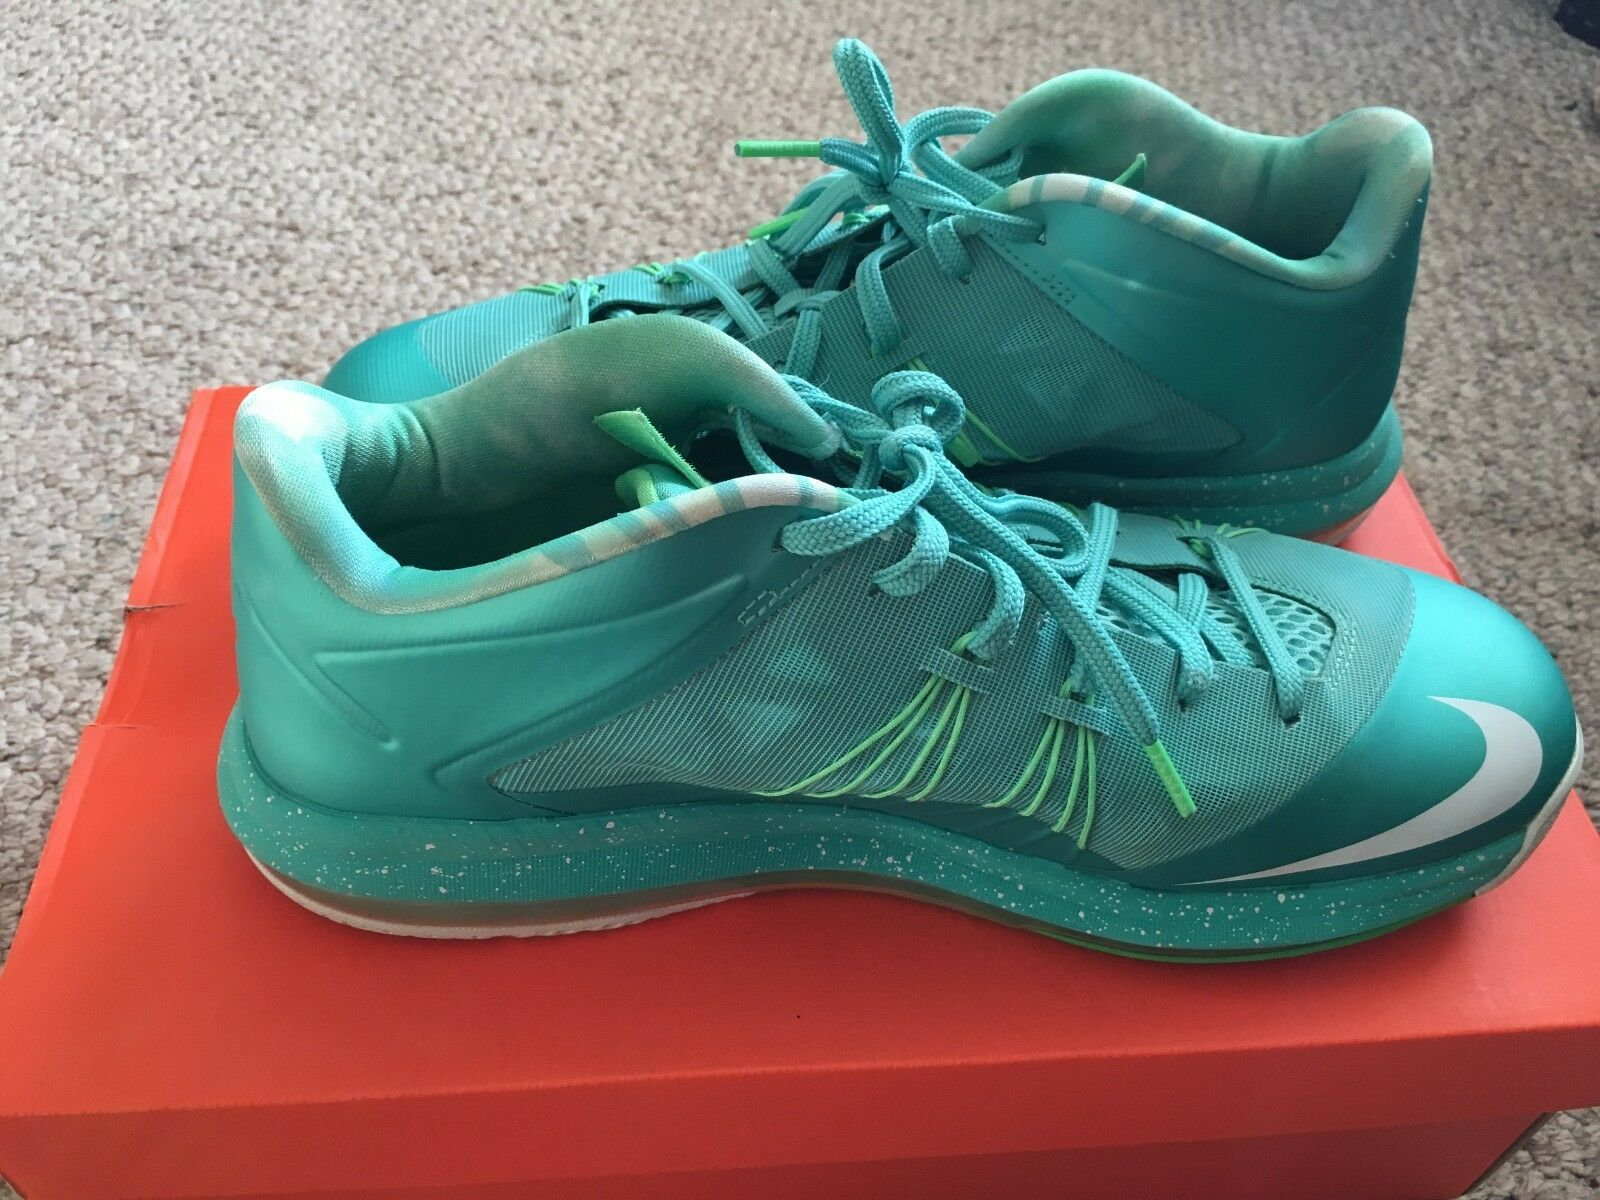 Nike Lebron 10 Low  Easter  Size Mens 11.5 slightly used without original box